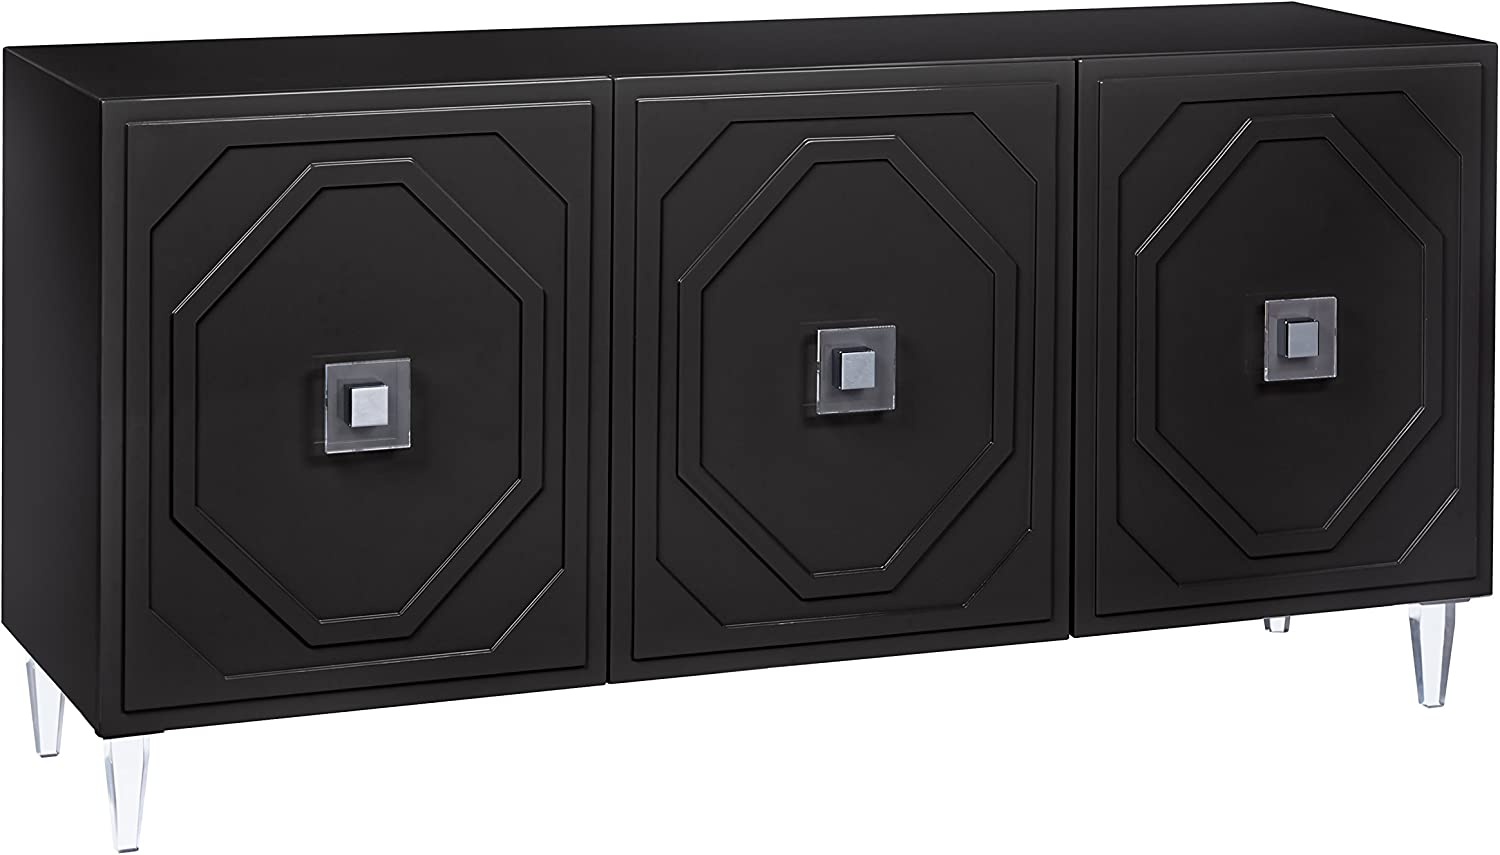 Tov Furniture Andros Collection 3 Door Dining Room Buffet, Black